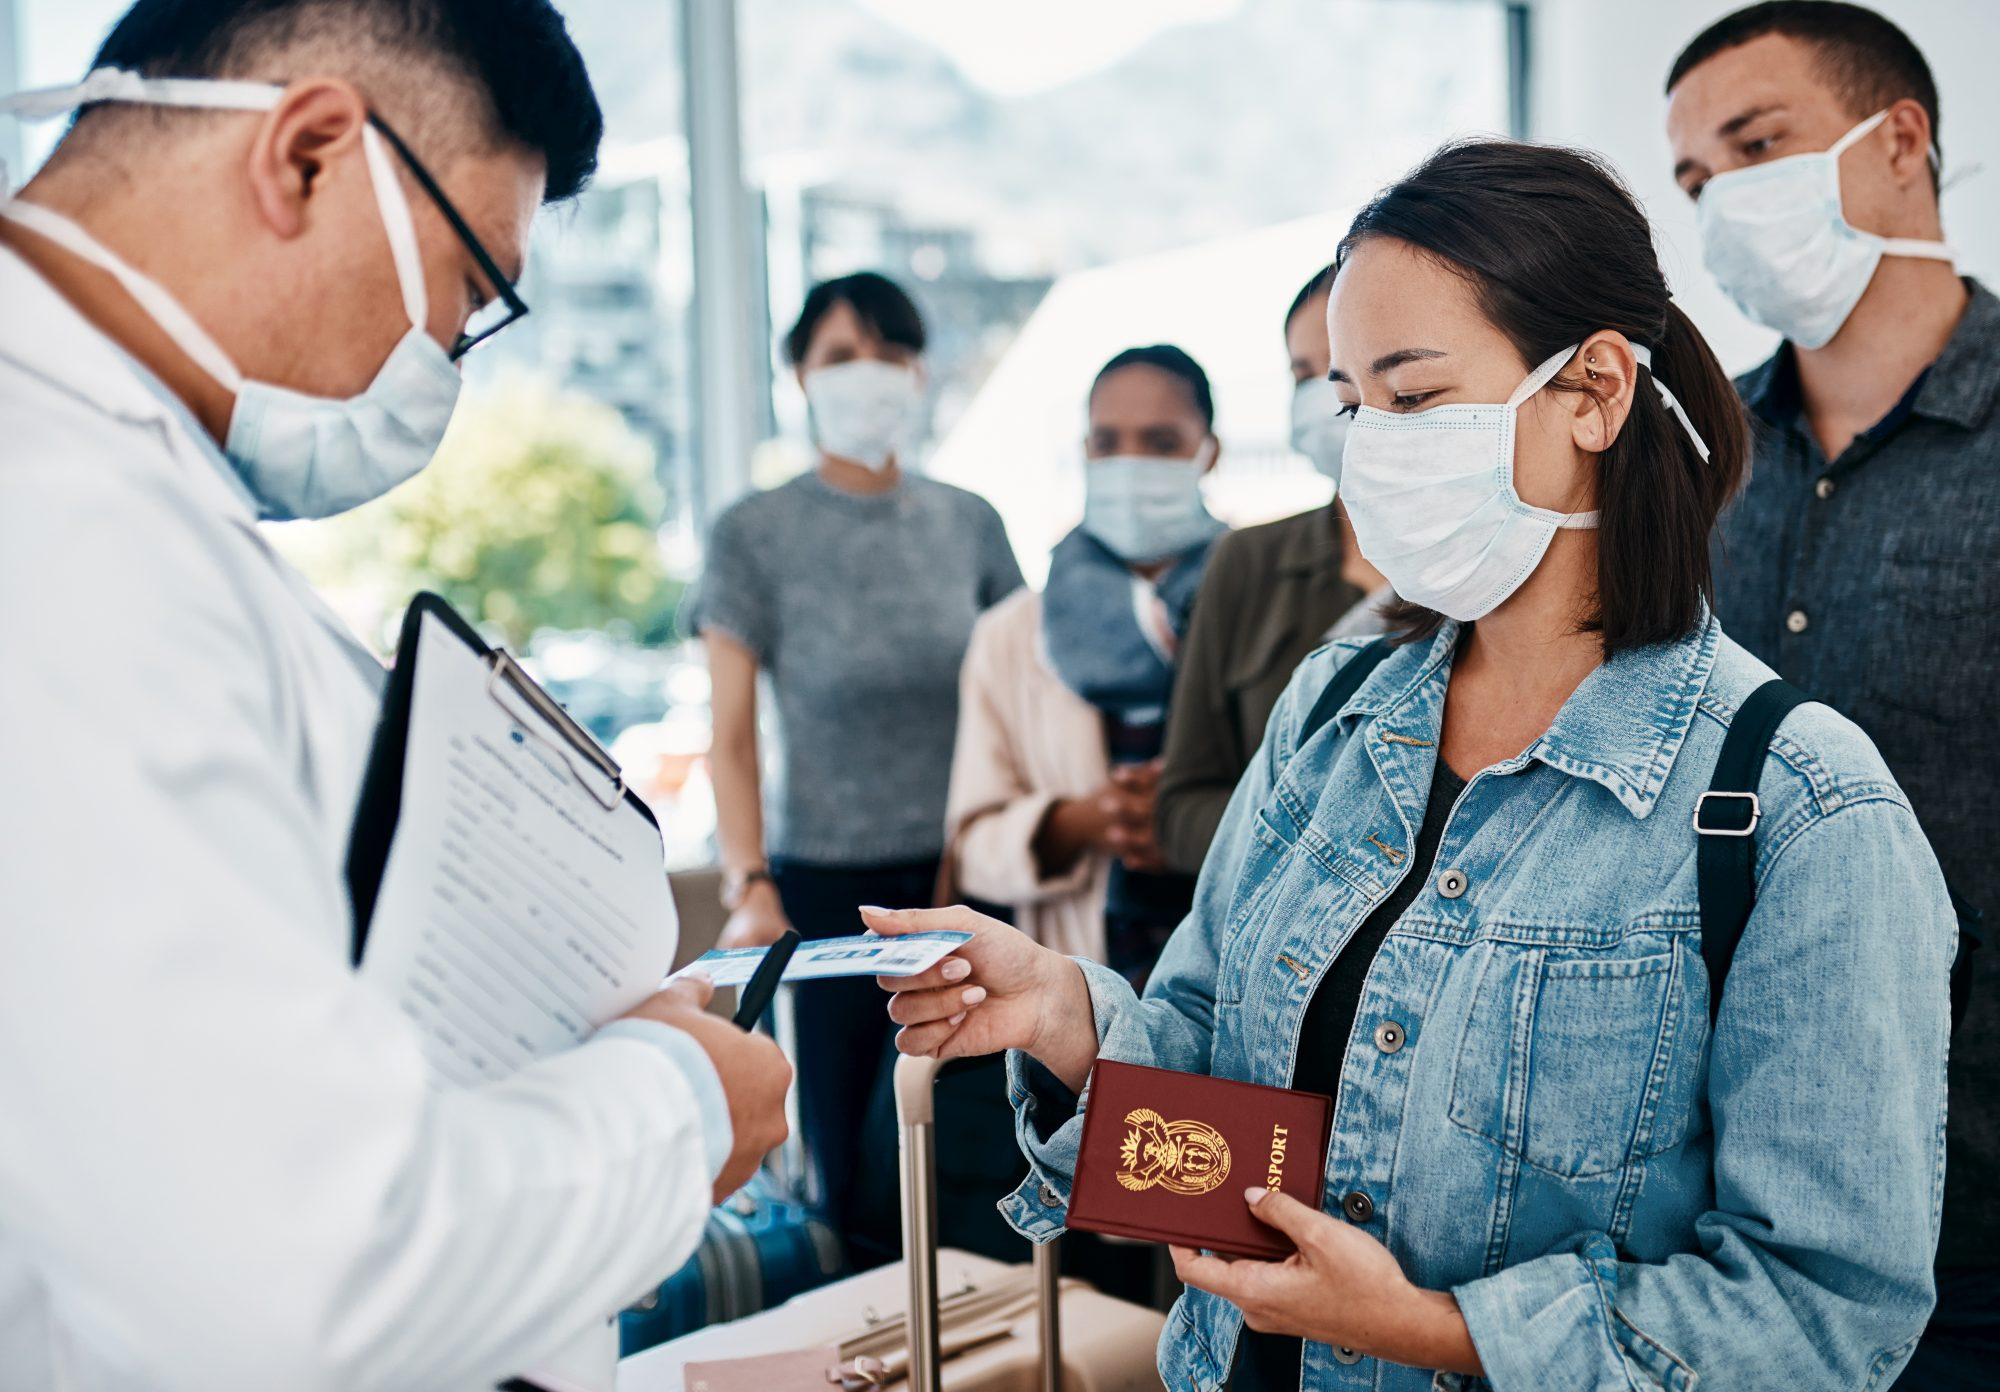 Shot of a woman wearing a mask and giving her passport to a doctor in an airport